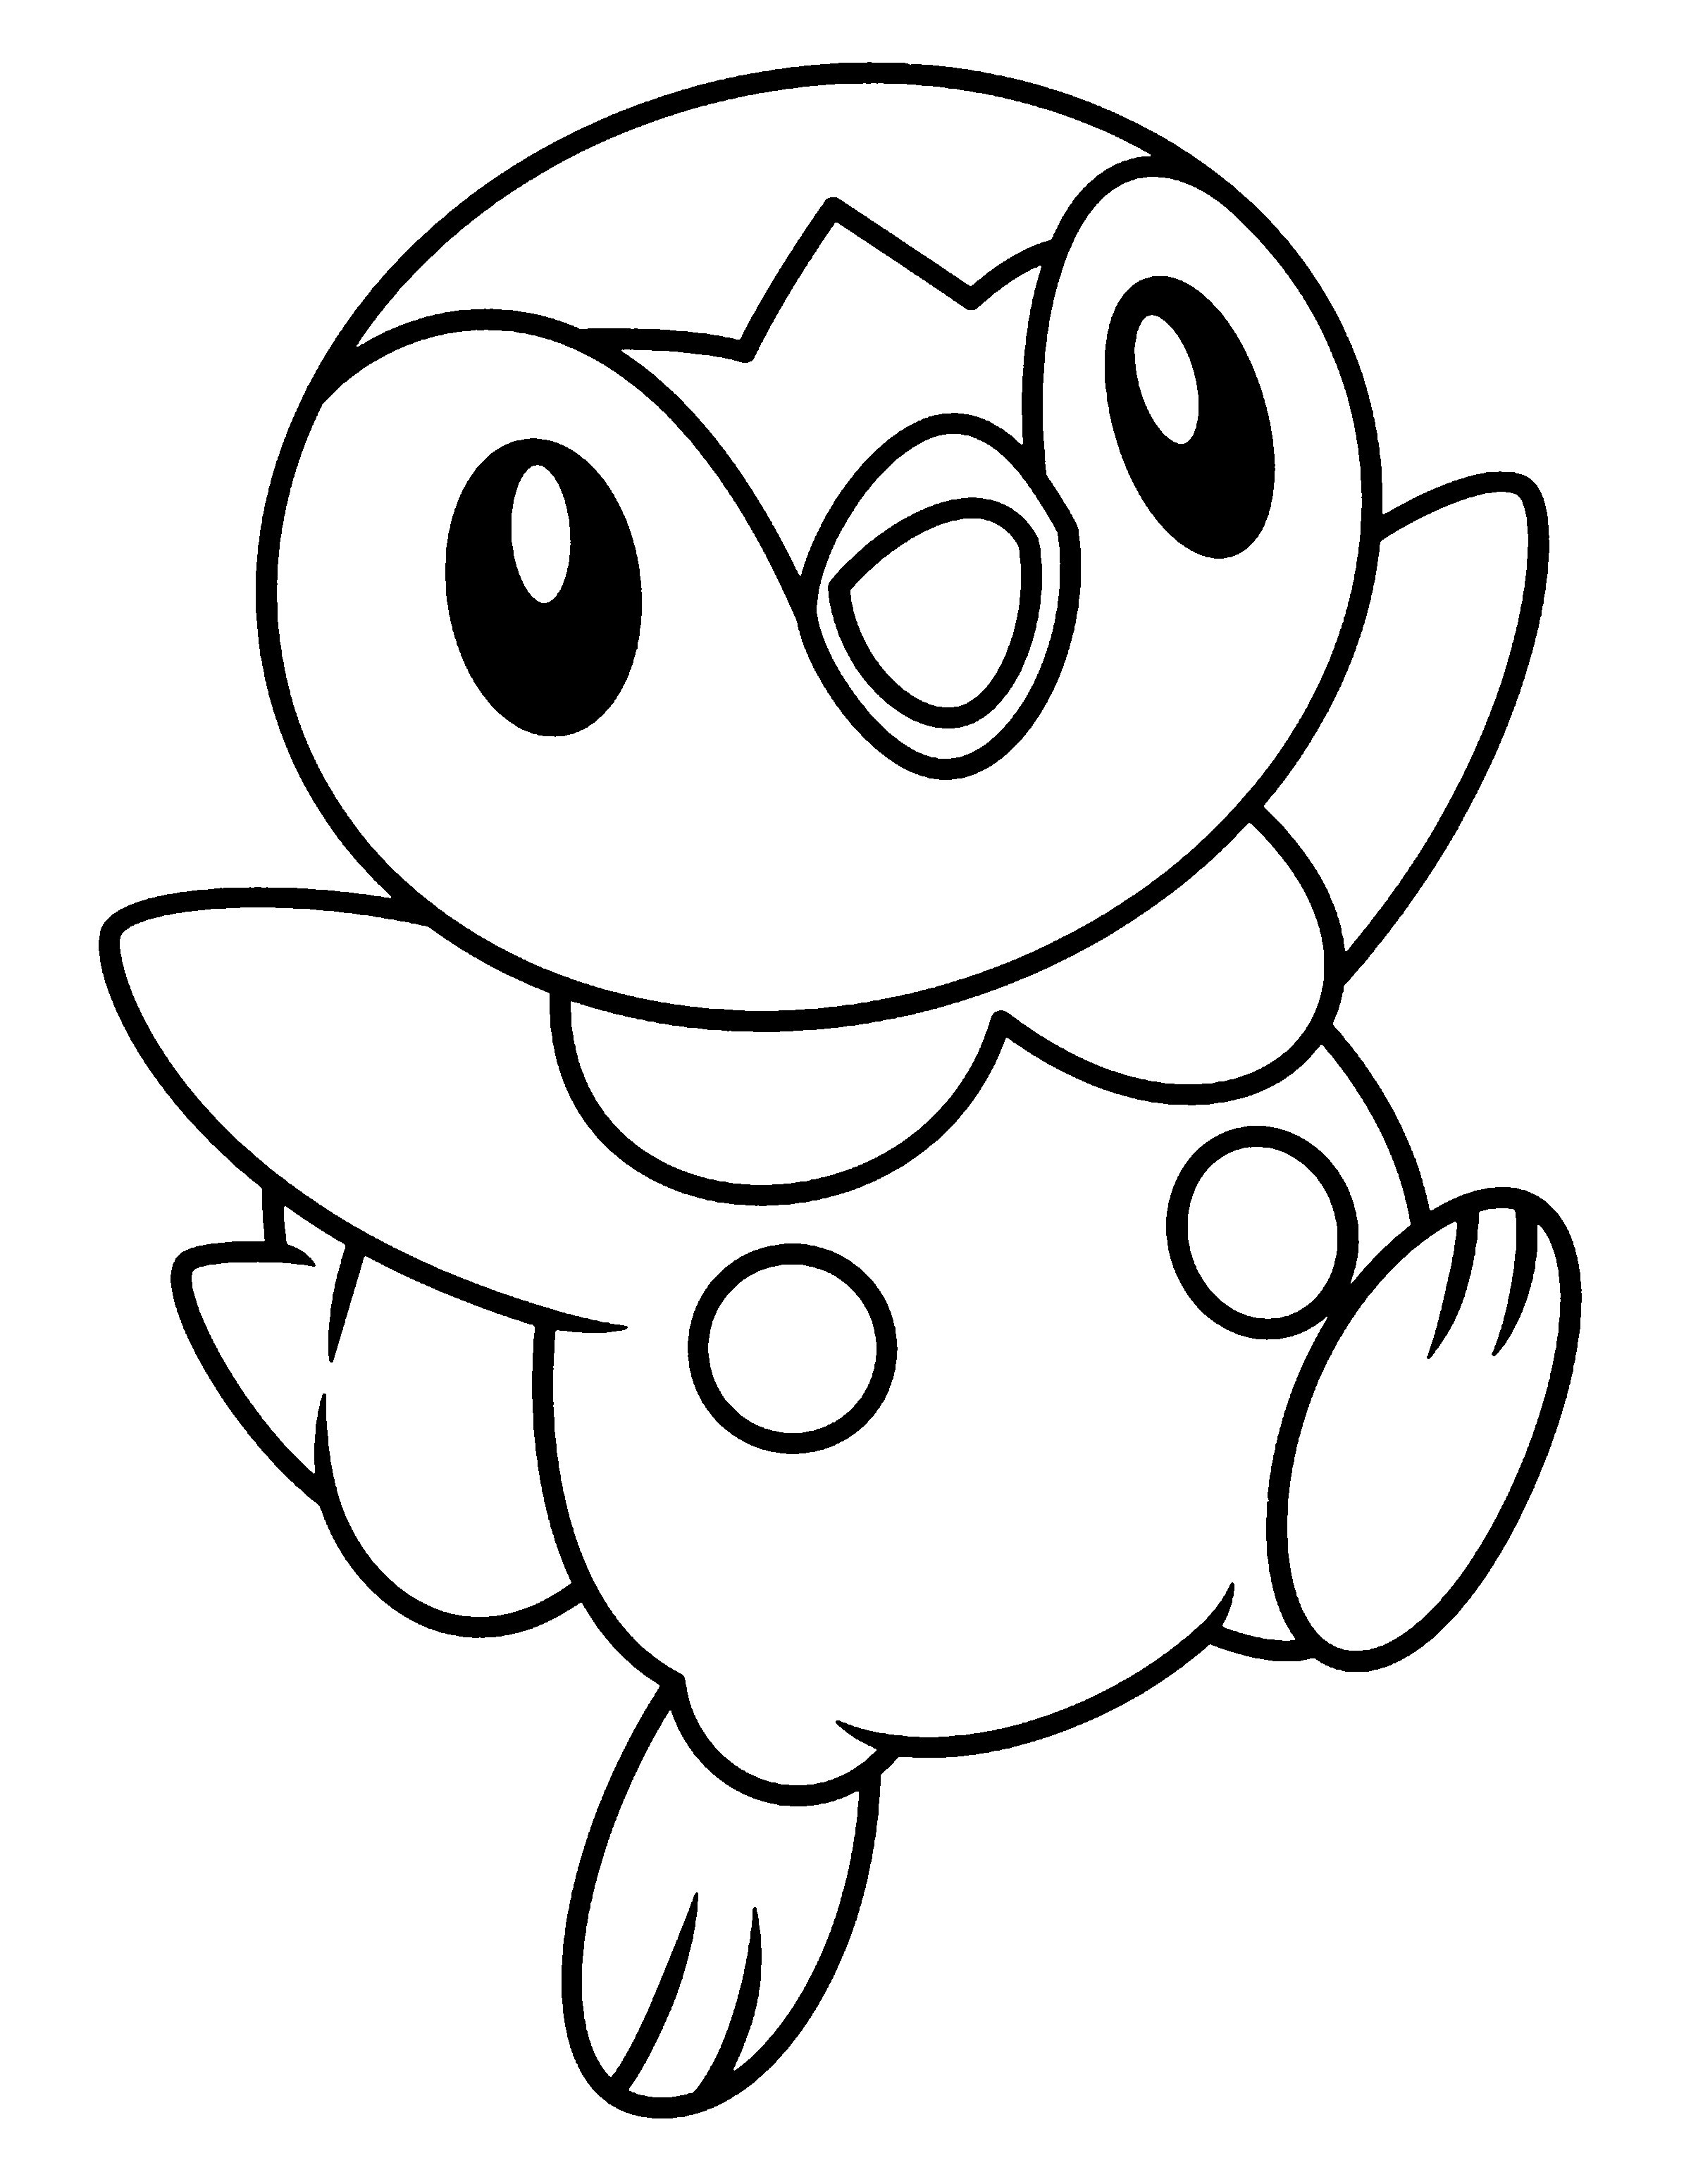 The Best Free White Coloring Page Images Download From 2737